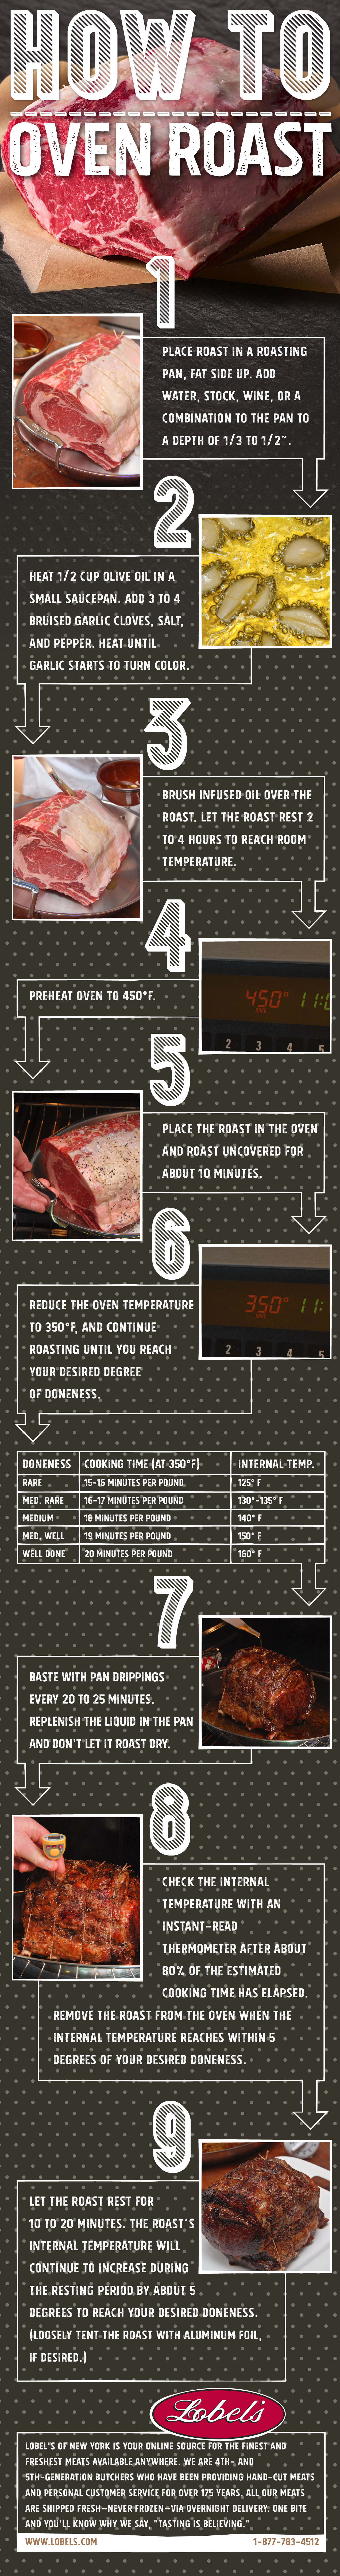 Info Graphic: How To Oven Roast